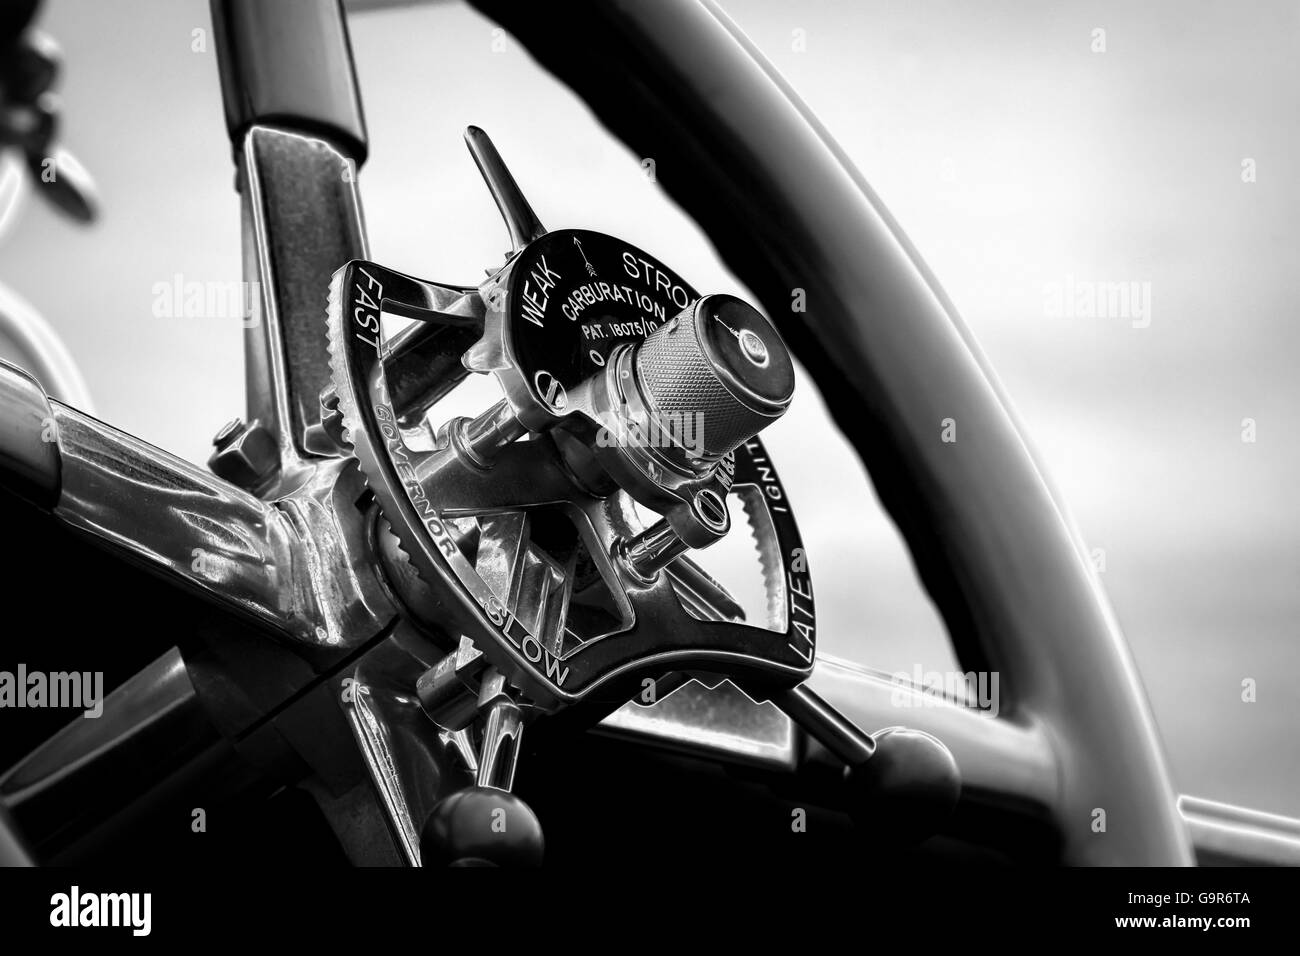 Steering wheel controls of a vintage Rolls Royce Car with a solarize